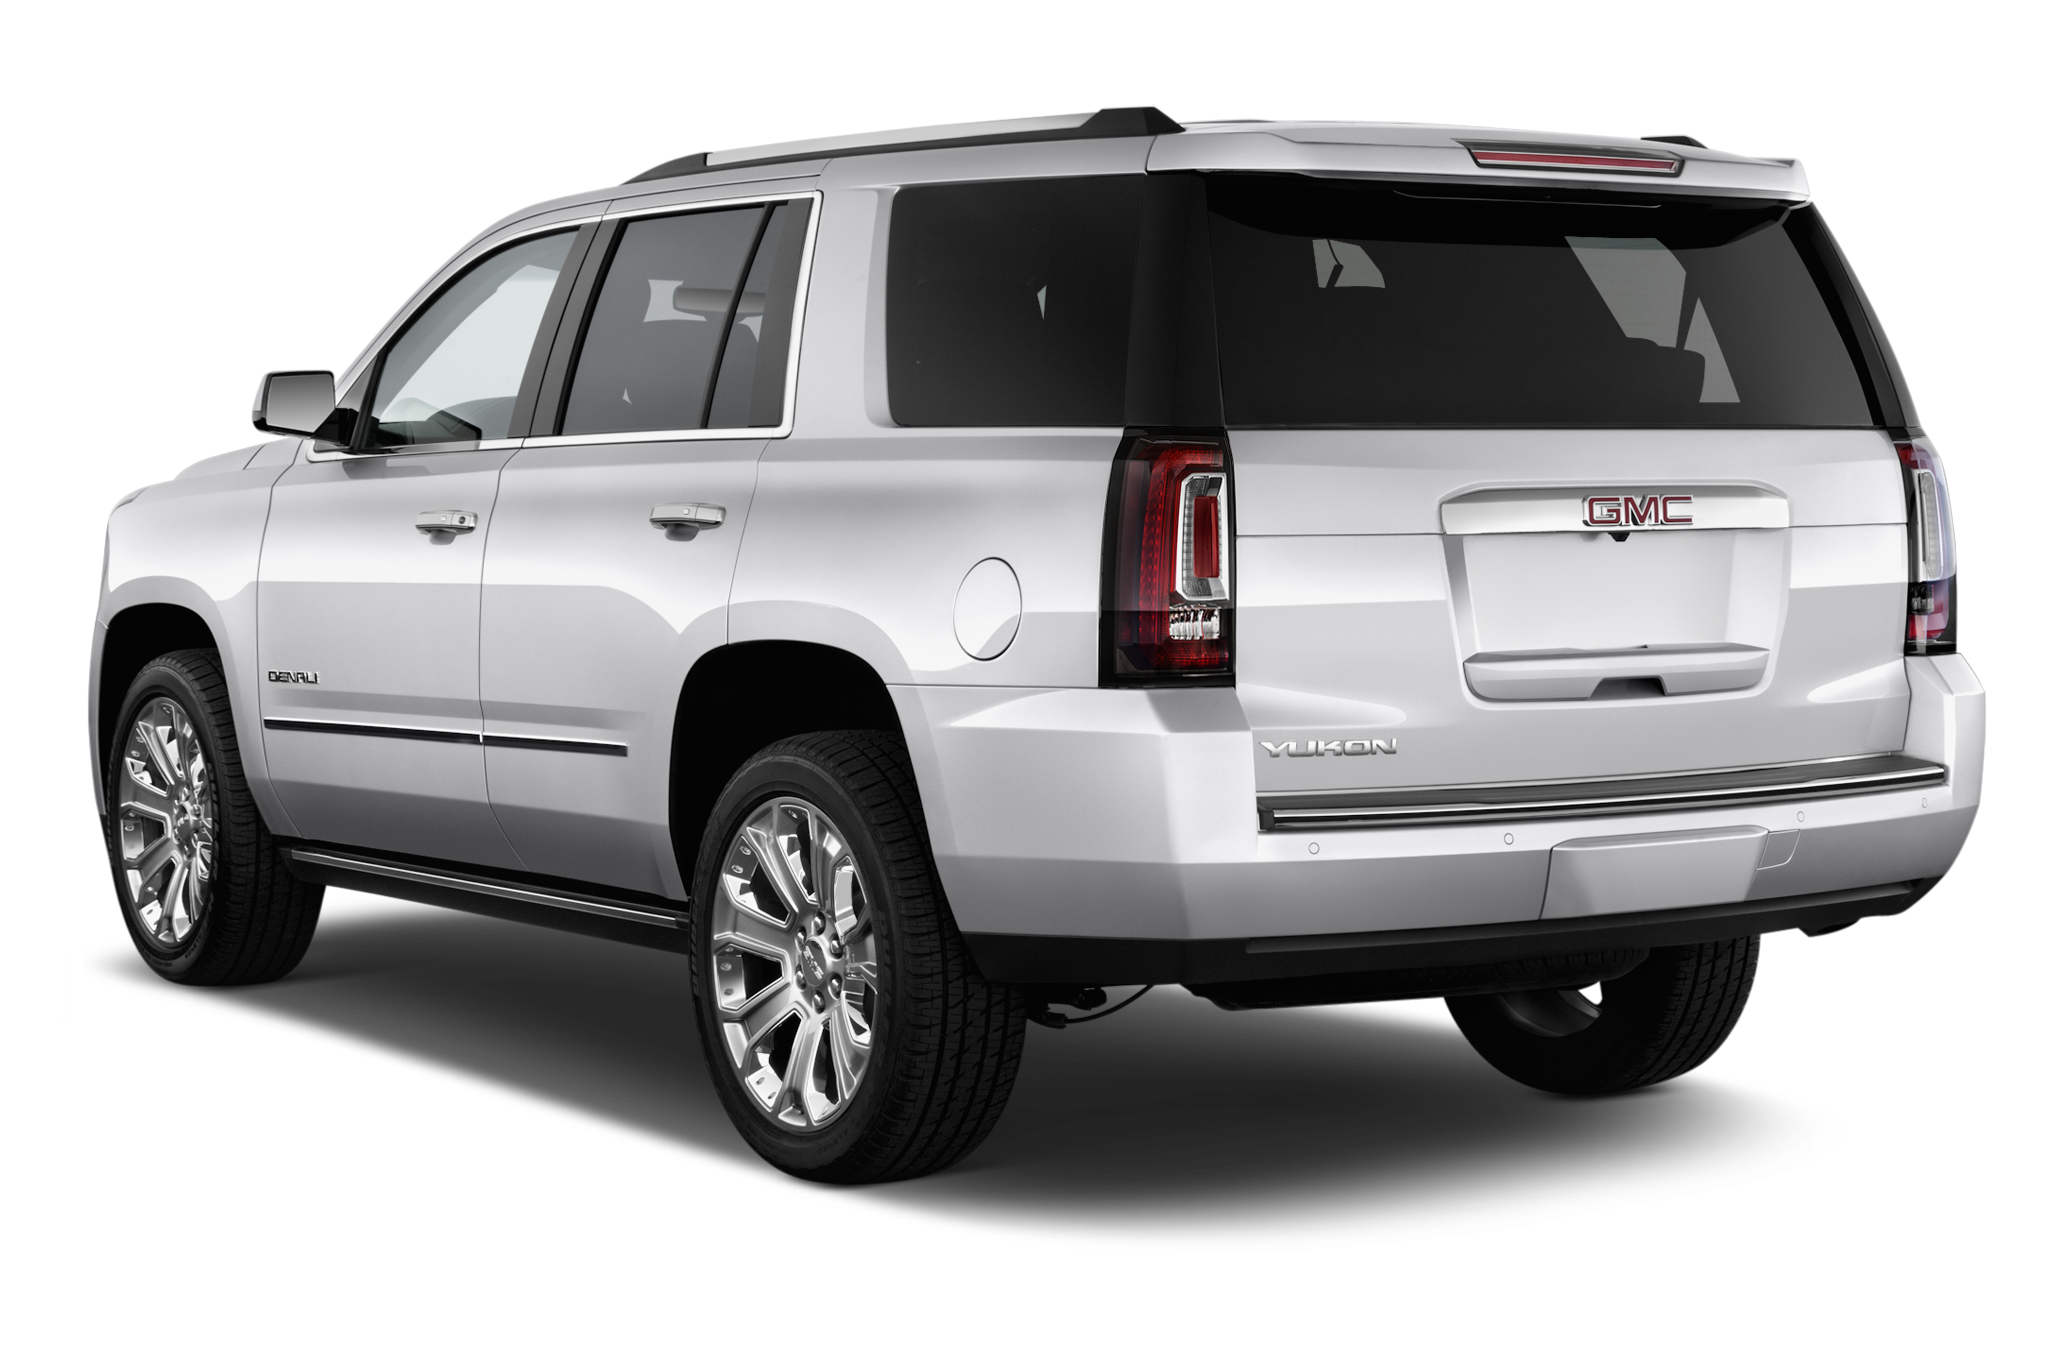 2016 Gmc Yukon Slt Premium Gets The Denali Styling Treatment Colorado Trailer Ke Wiring Diagram 48 91